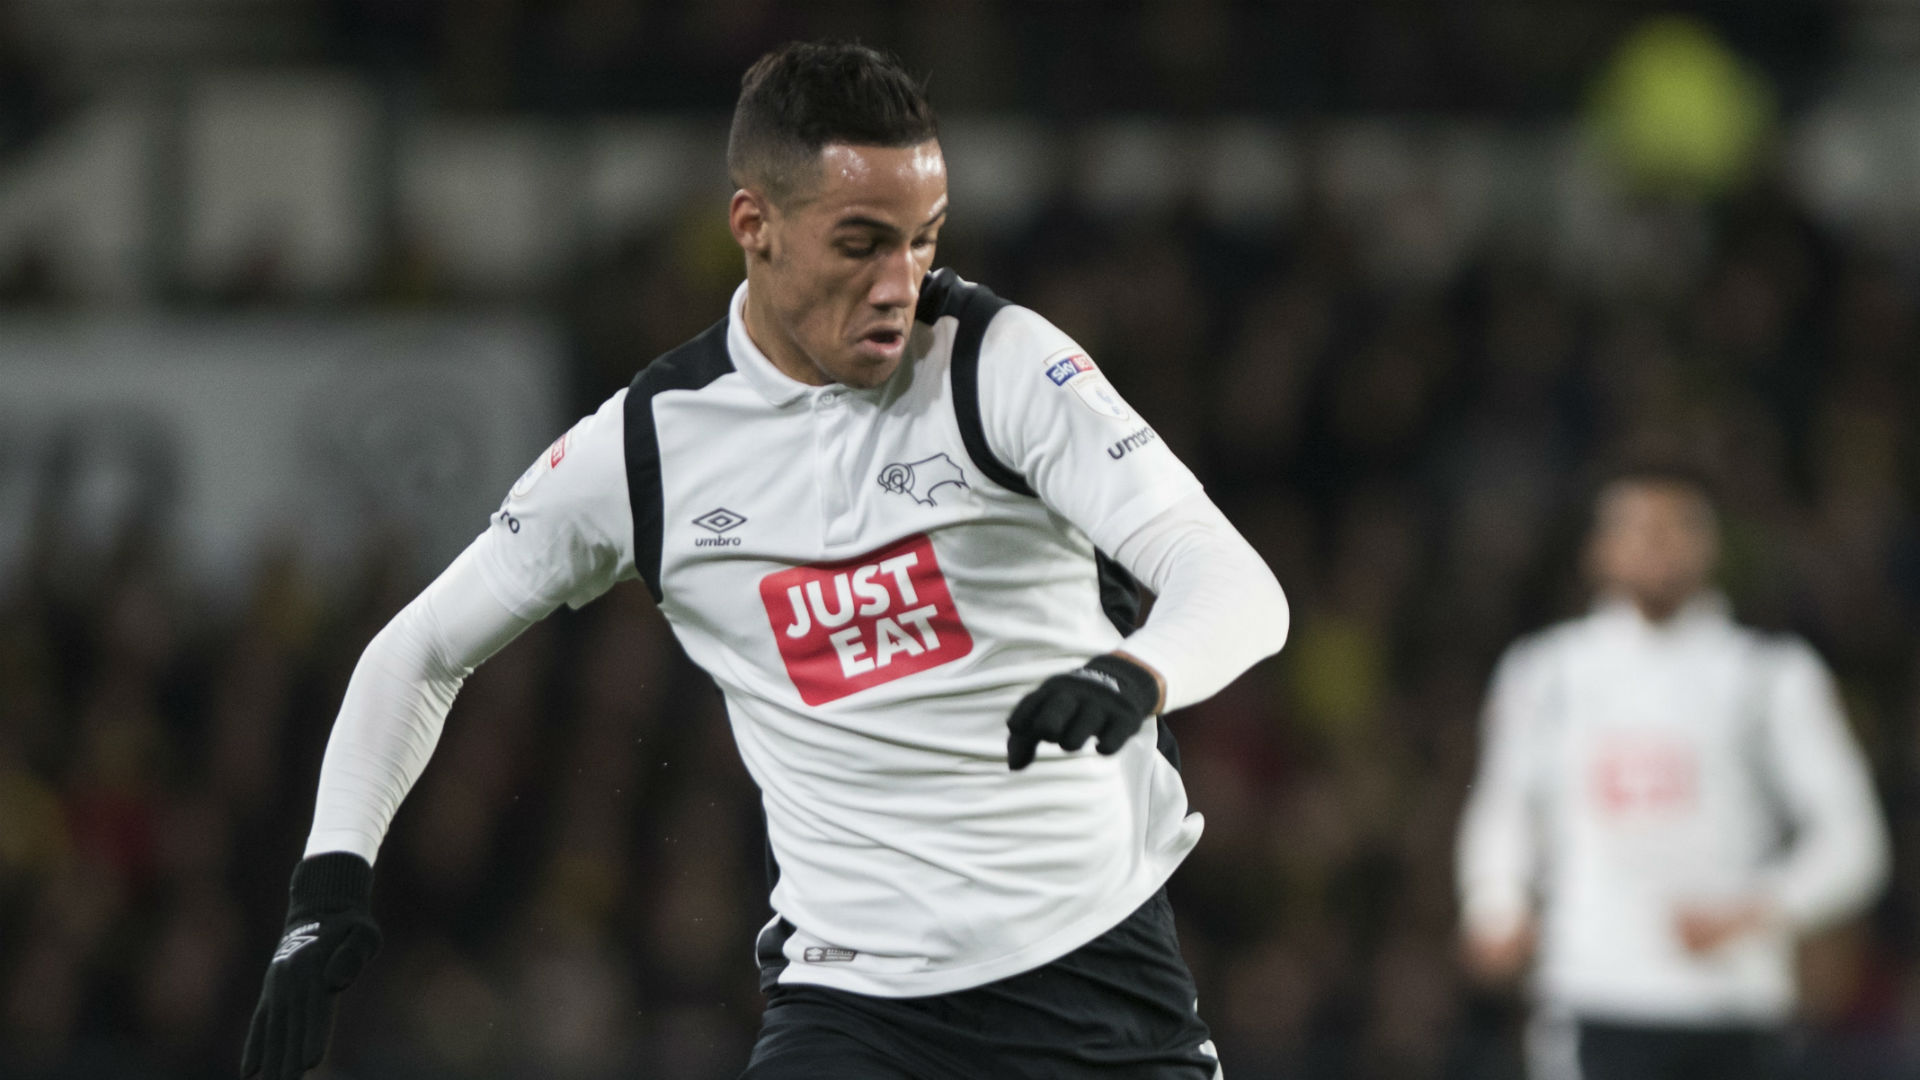 Tom Ince : Paul Ince's son signs for Huddersfield